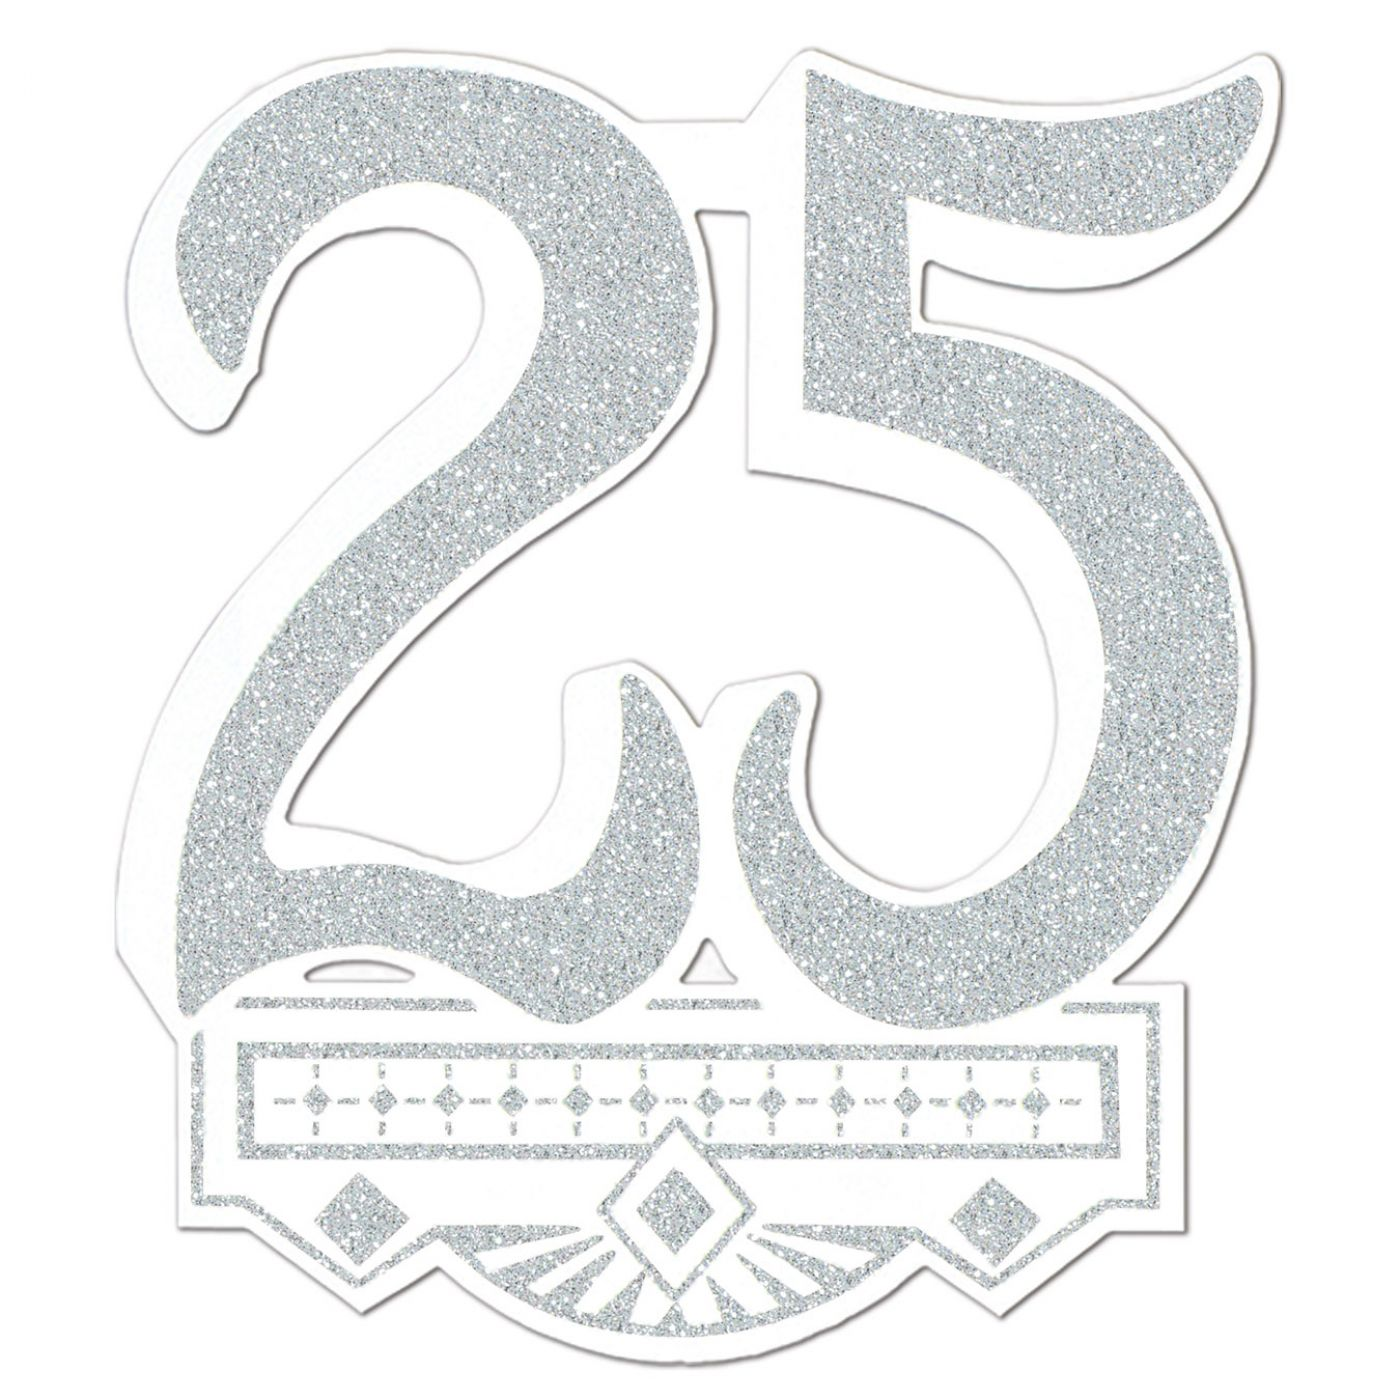 25th Anniversary Crest image